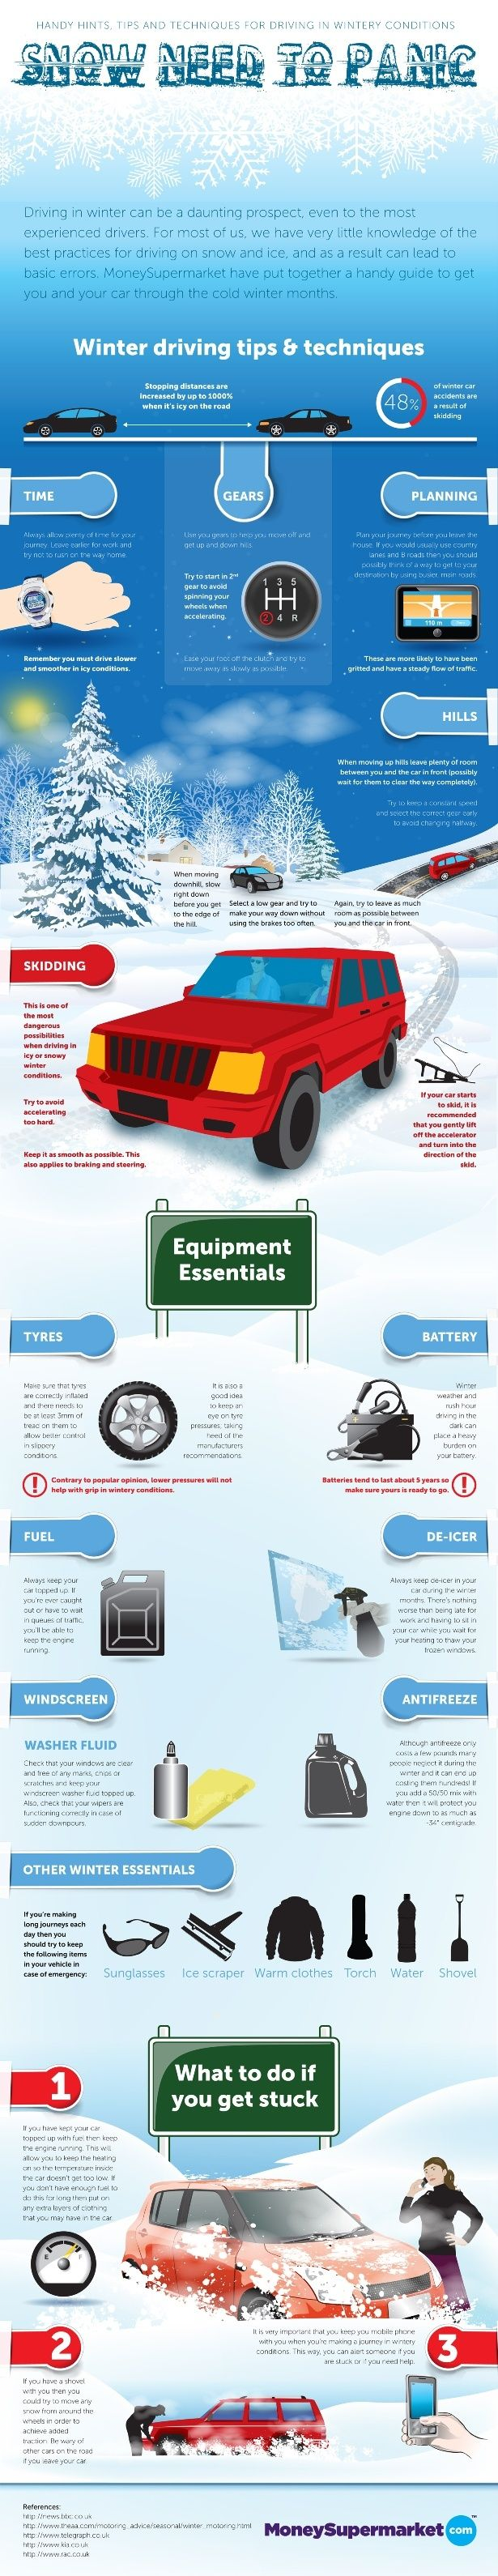 Winter safety tips for truck drivers - Uk Winter Driving Tips Techniques Snow Need To Panic